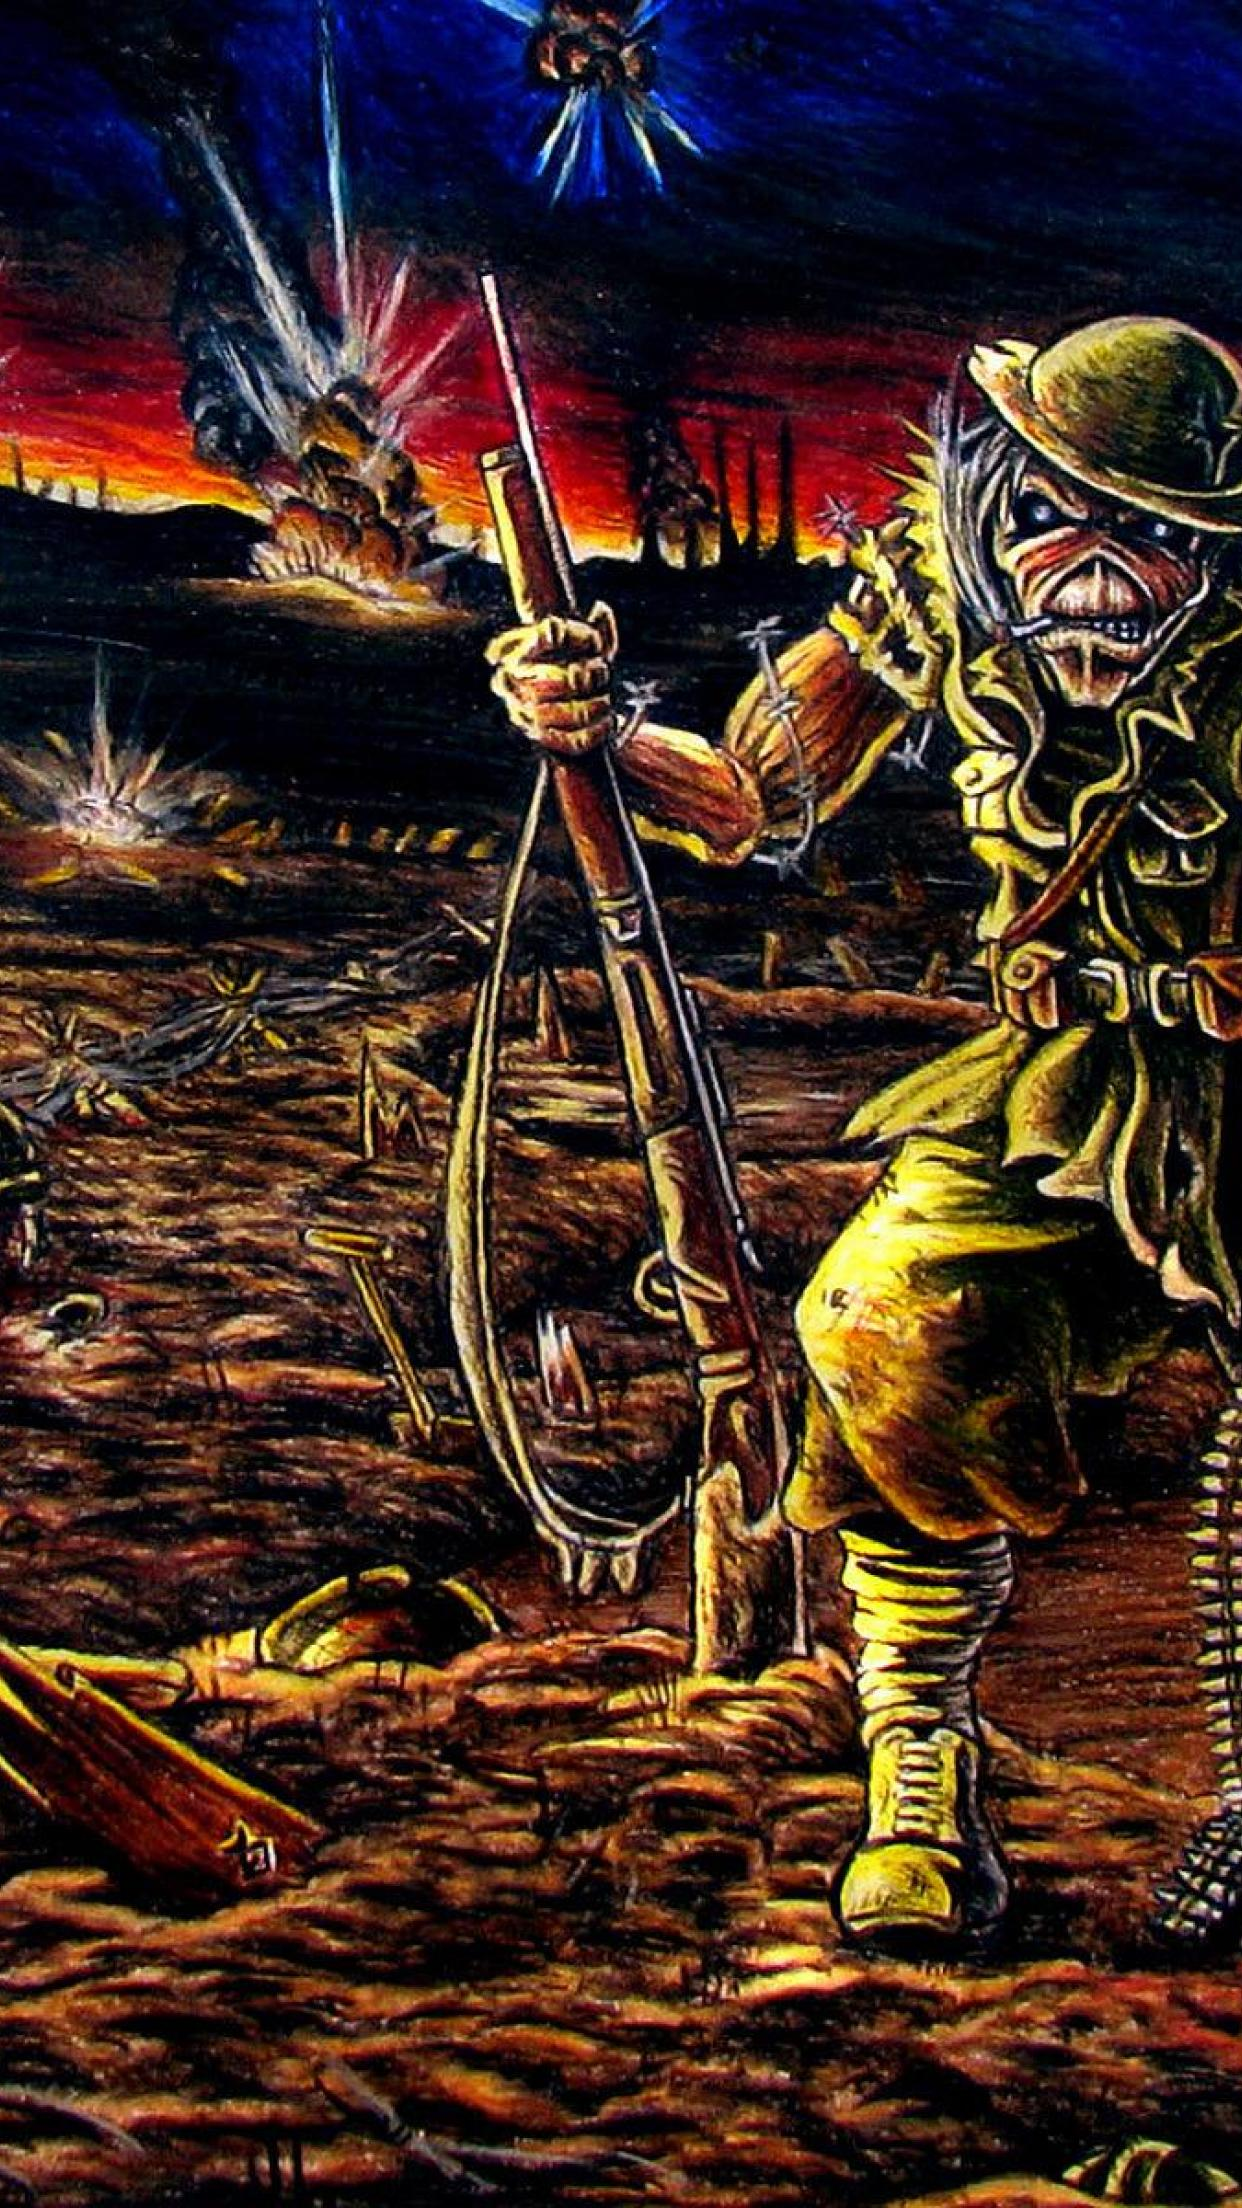 iron maiden iphone wallpaper - sf wallpaper